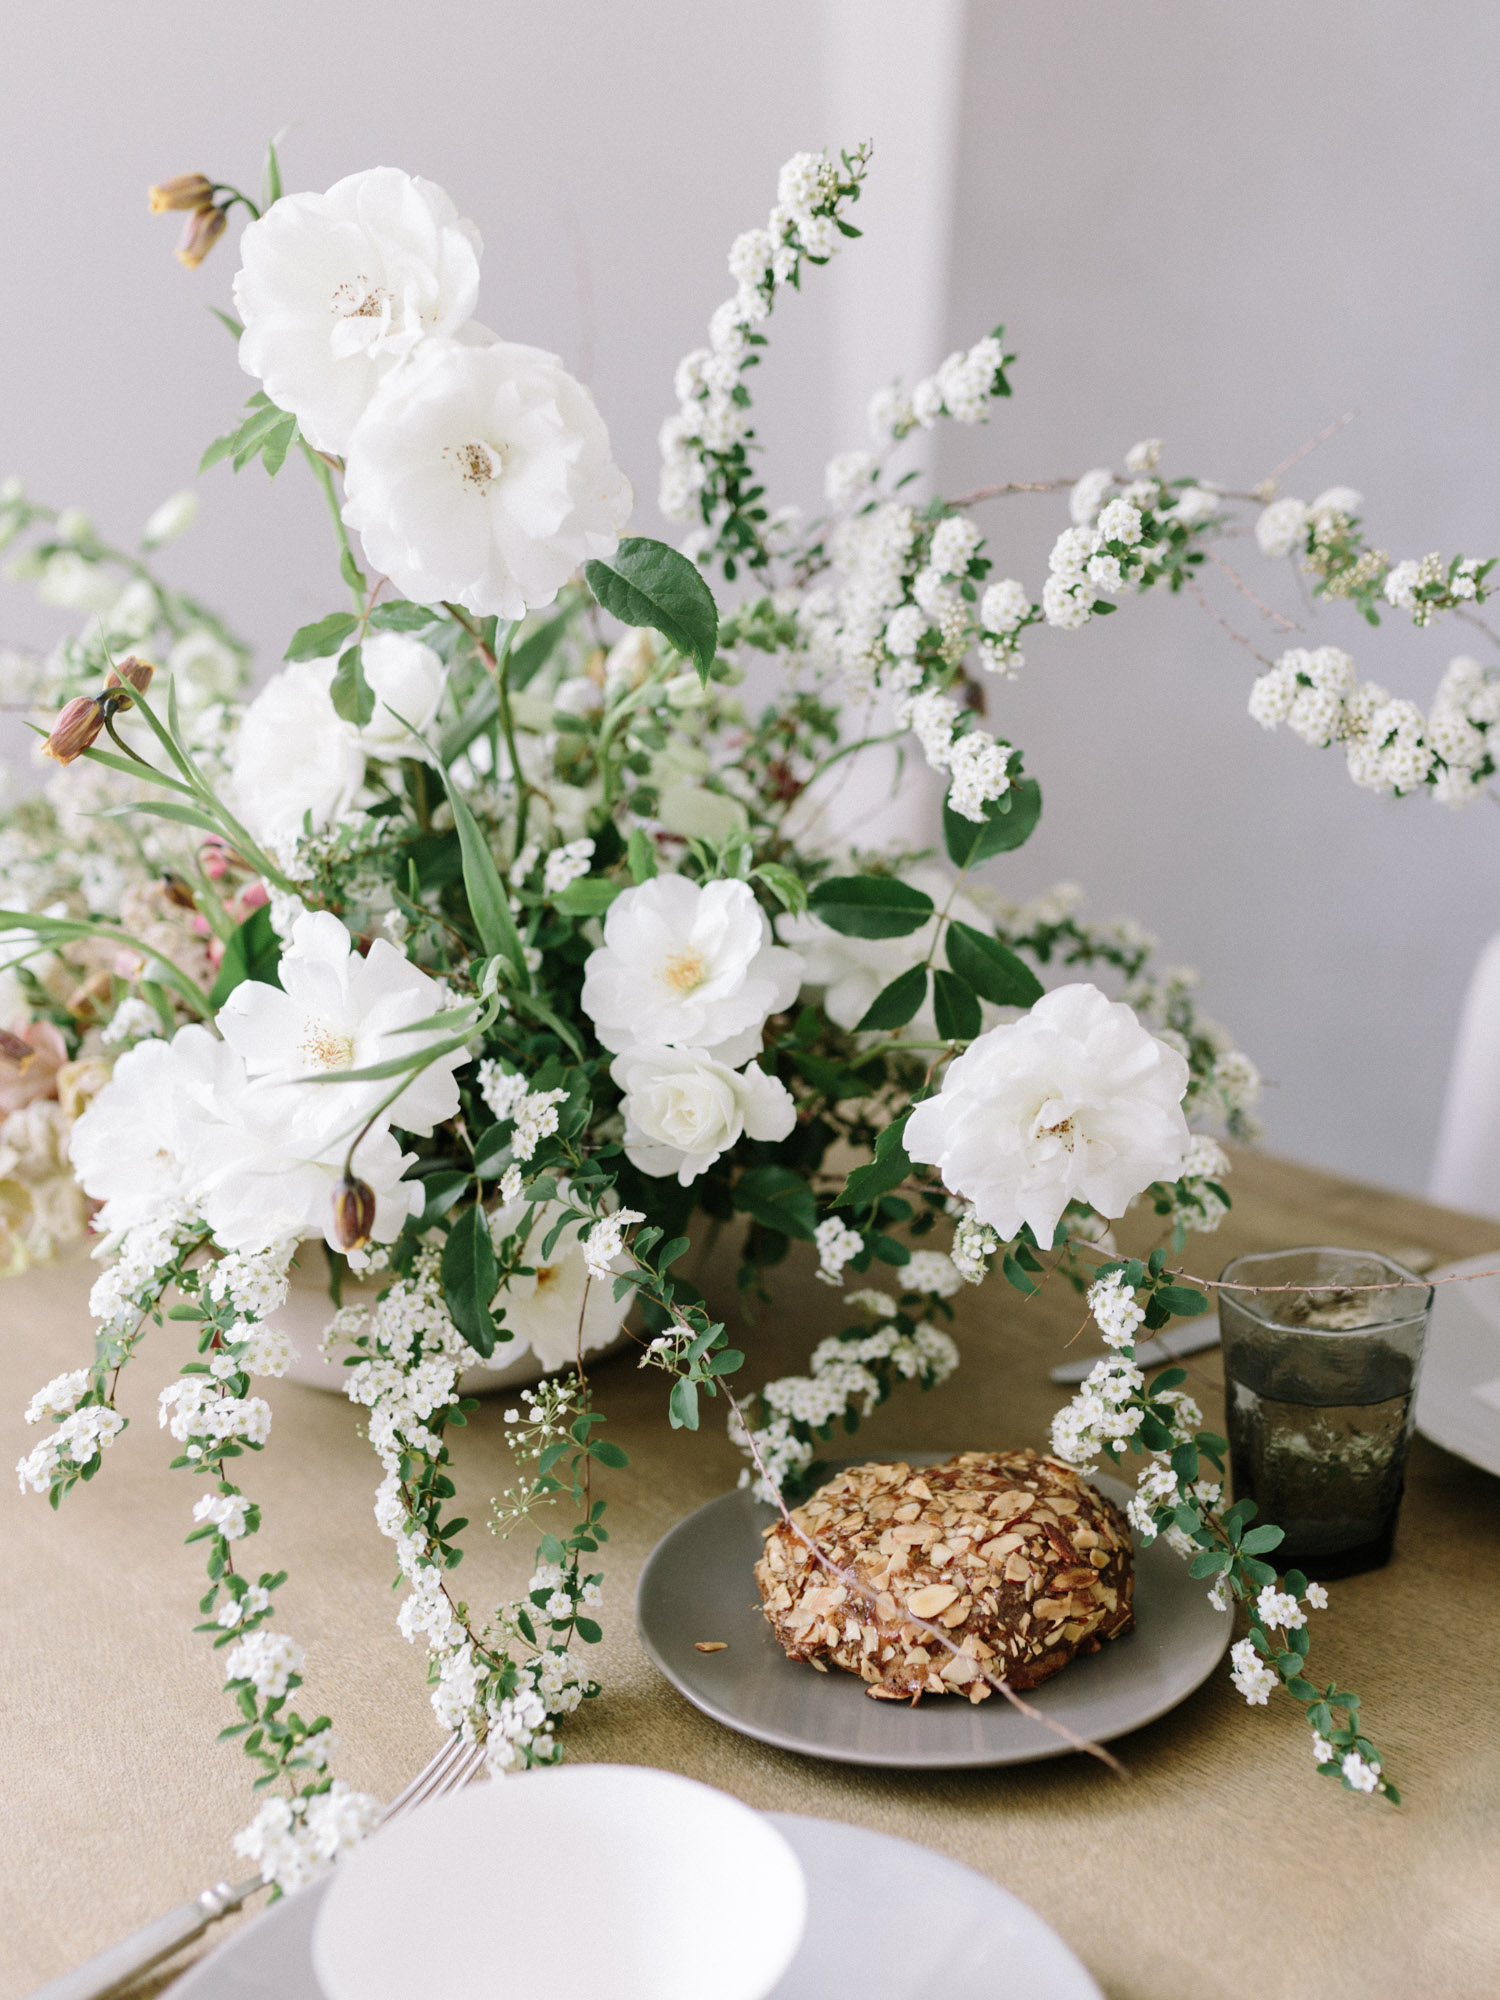 A wild, untamed floral centerpiece with white garden roses and flowering branches rests on a wood table